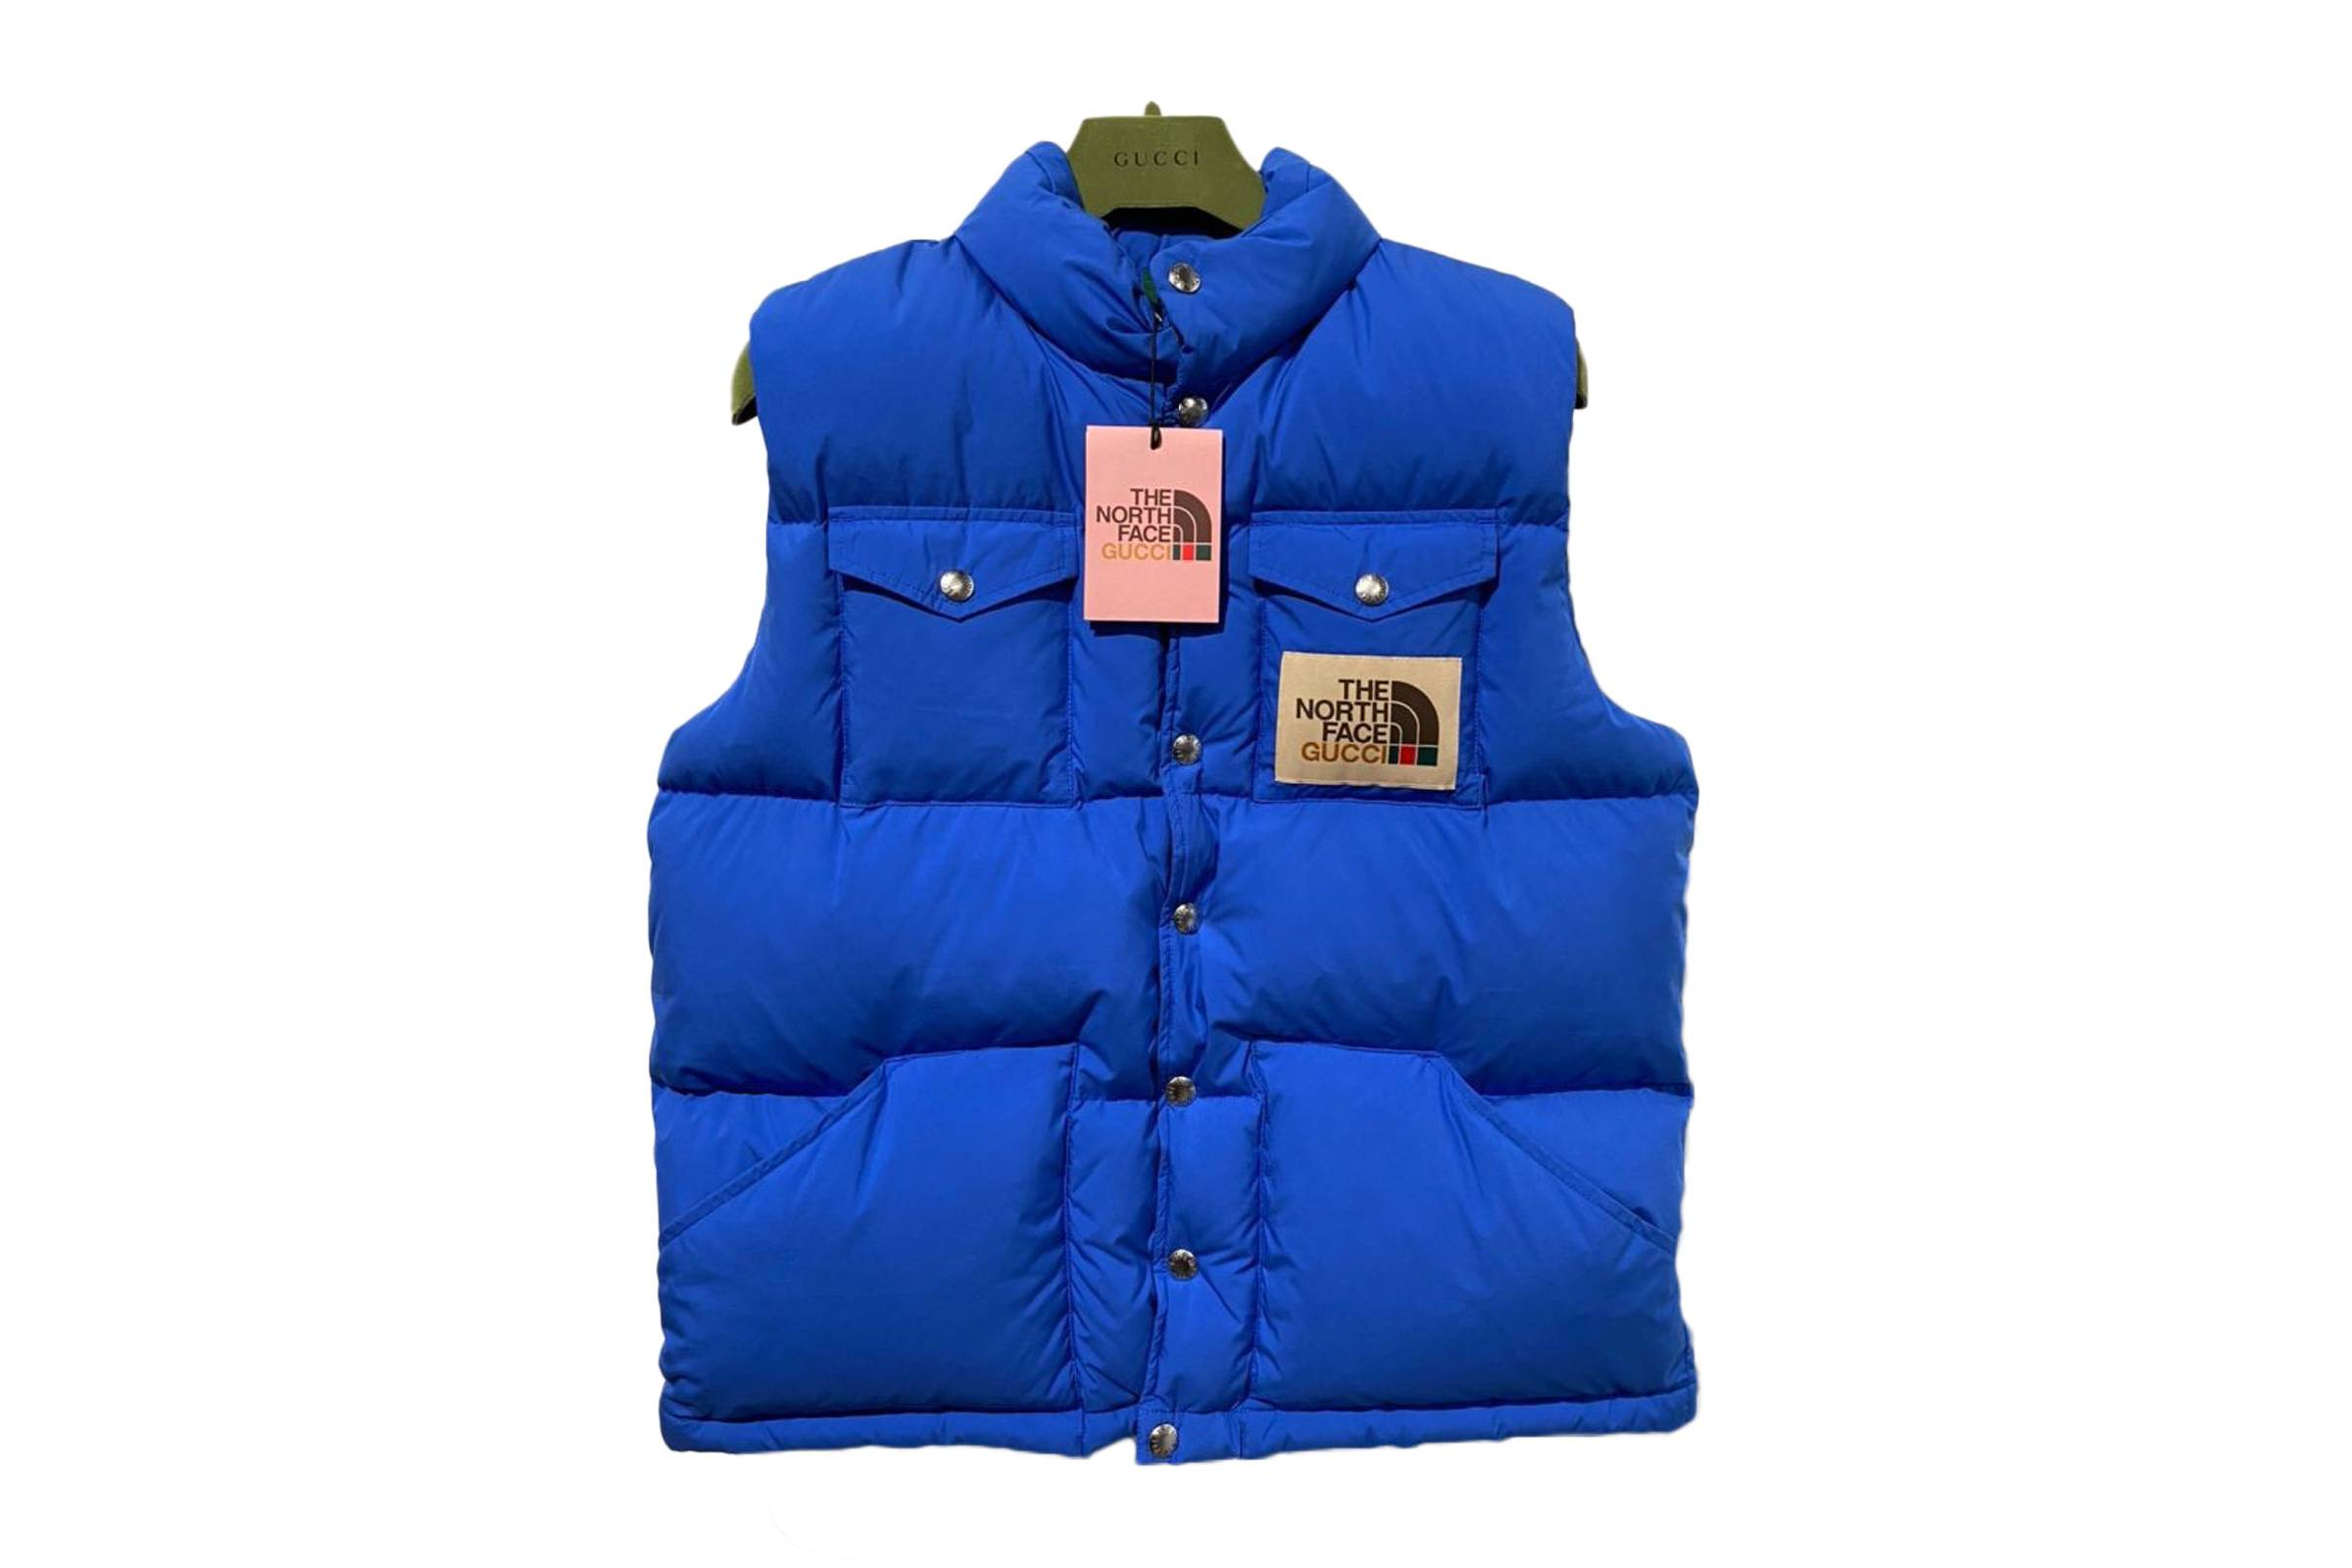 Gucci x The North Face Puffer Vest